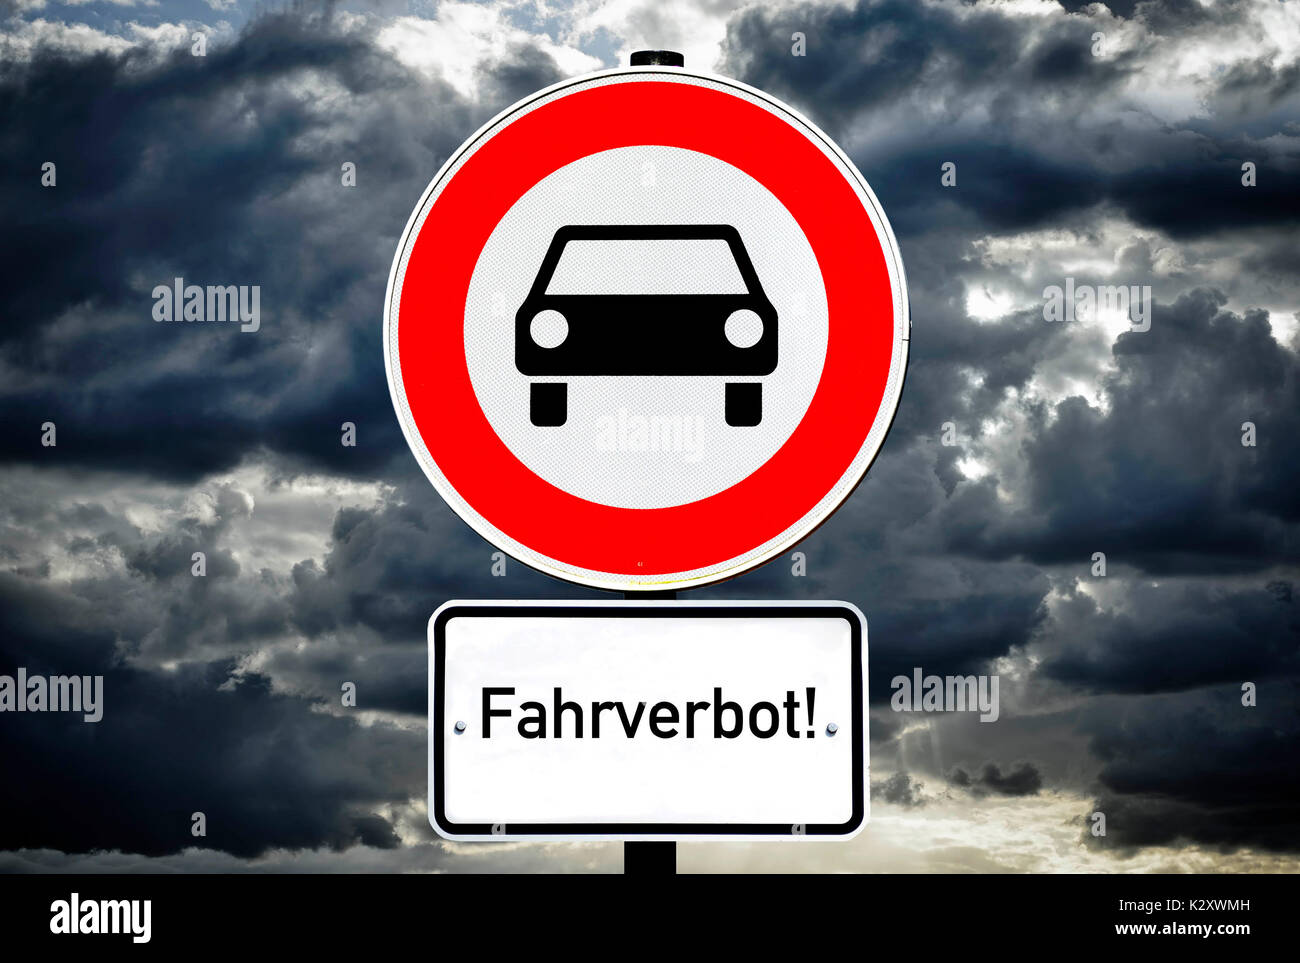 Sign Ban on driving for vehicle, diesel bans on driving, Schild Fahrverbot fuer Kfz, Diesel-Fahrverbote - Stock Image